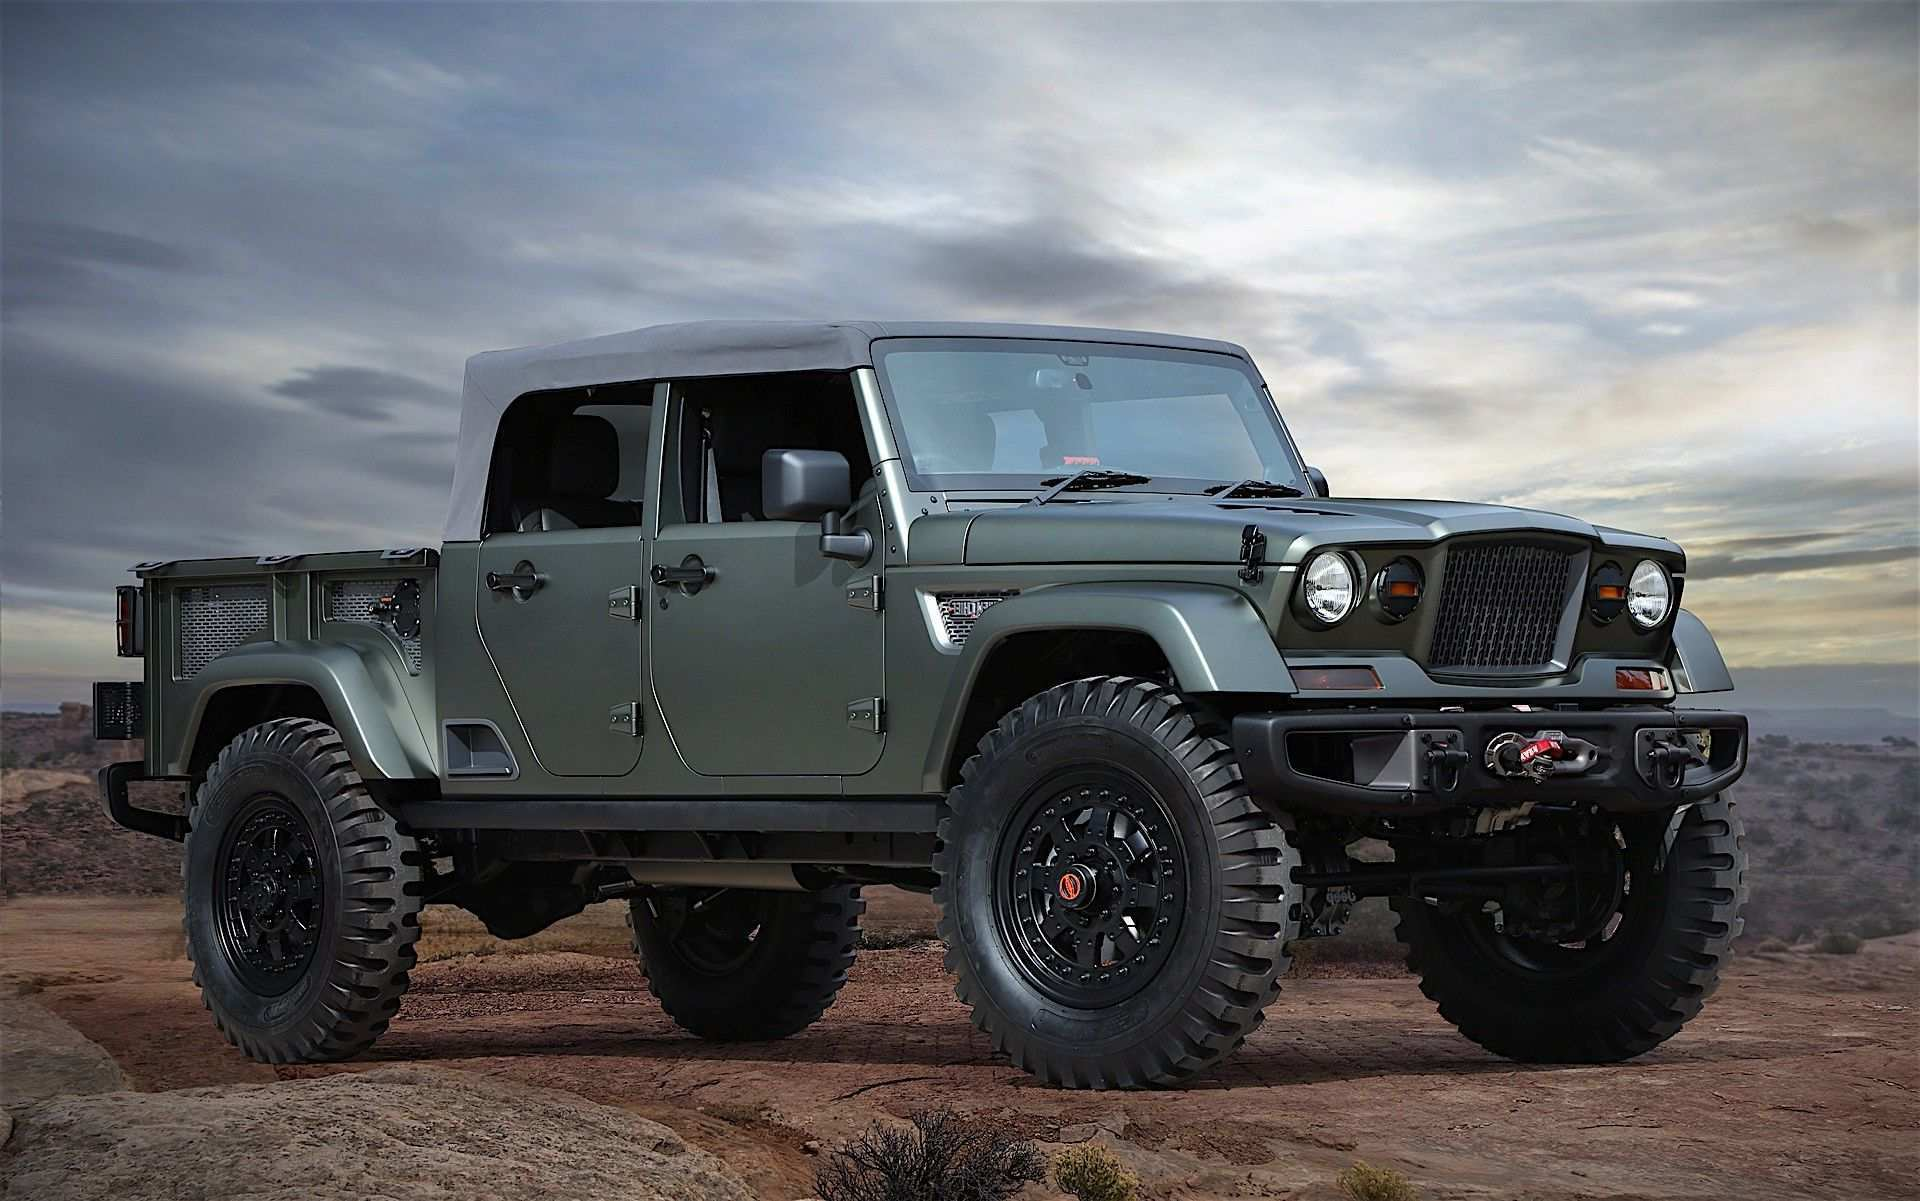 71 All New 2019 Jeep Mpg Rumors by 2019 Jeep Mpg